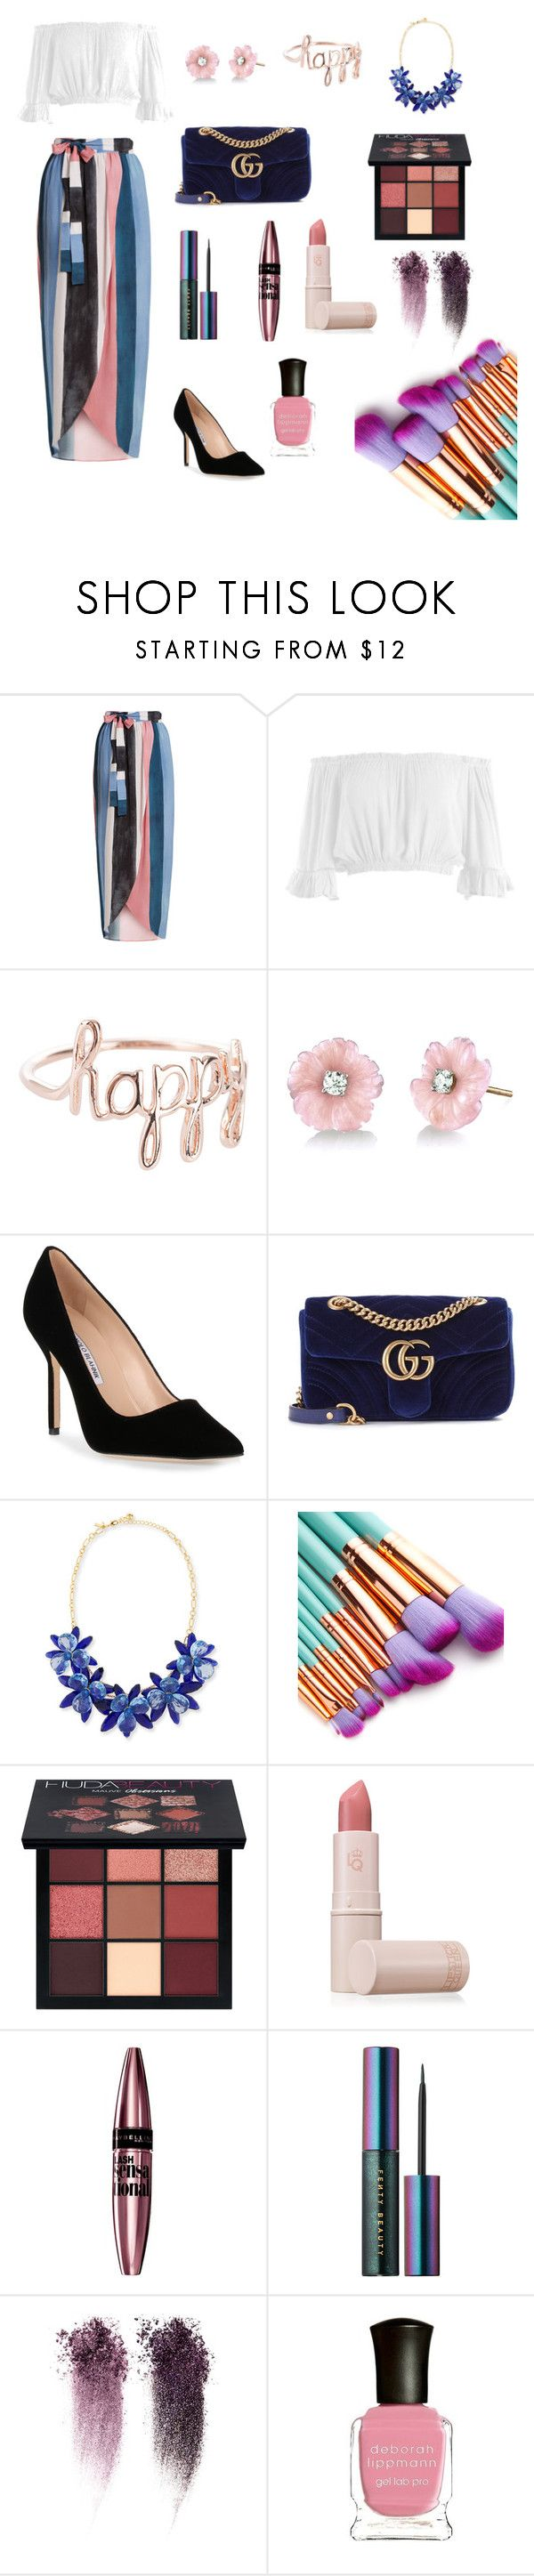 """""""Untitled #24"""" by courtneygirl0723 ❤ liked on Polyvore featuring Mara Hoffman, Sans Souci, Irene Neuwirth, Manolo Blahnik, Gucci, Kate Spade, Huda Beauty, Lipstick Queen, Maybelline and Puma"""